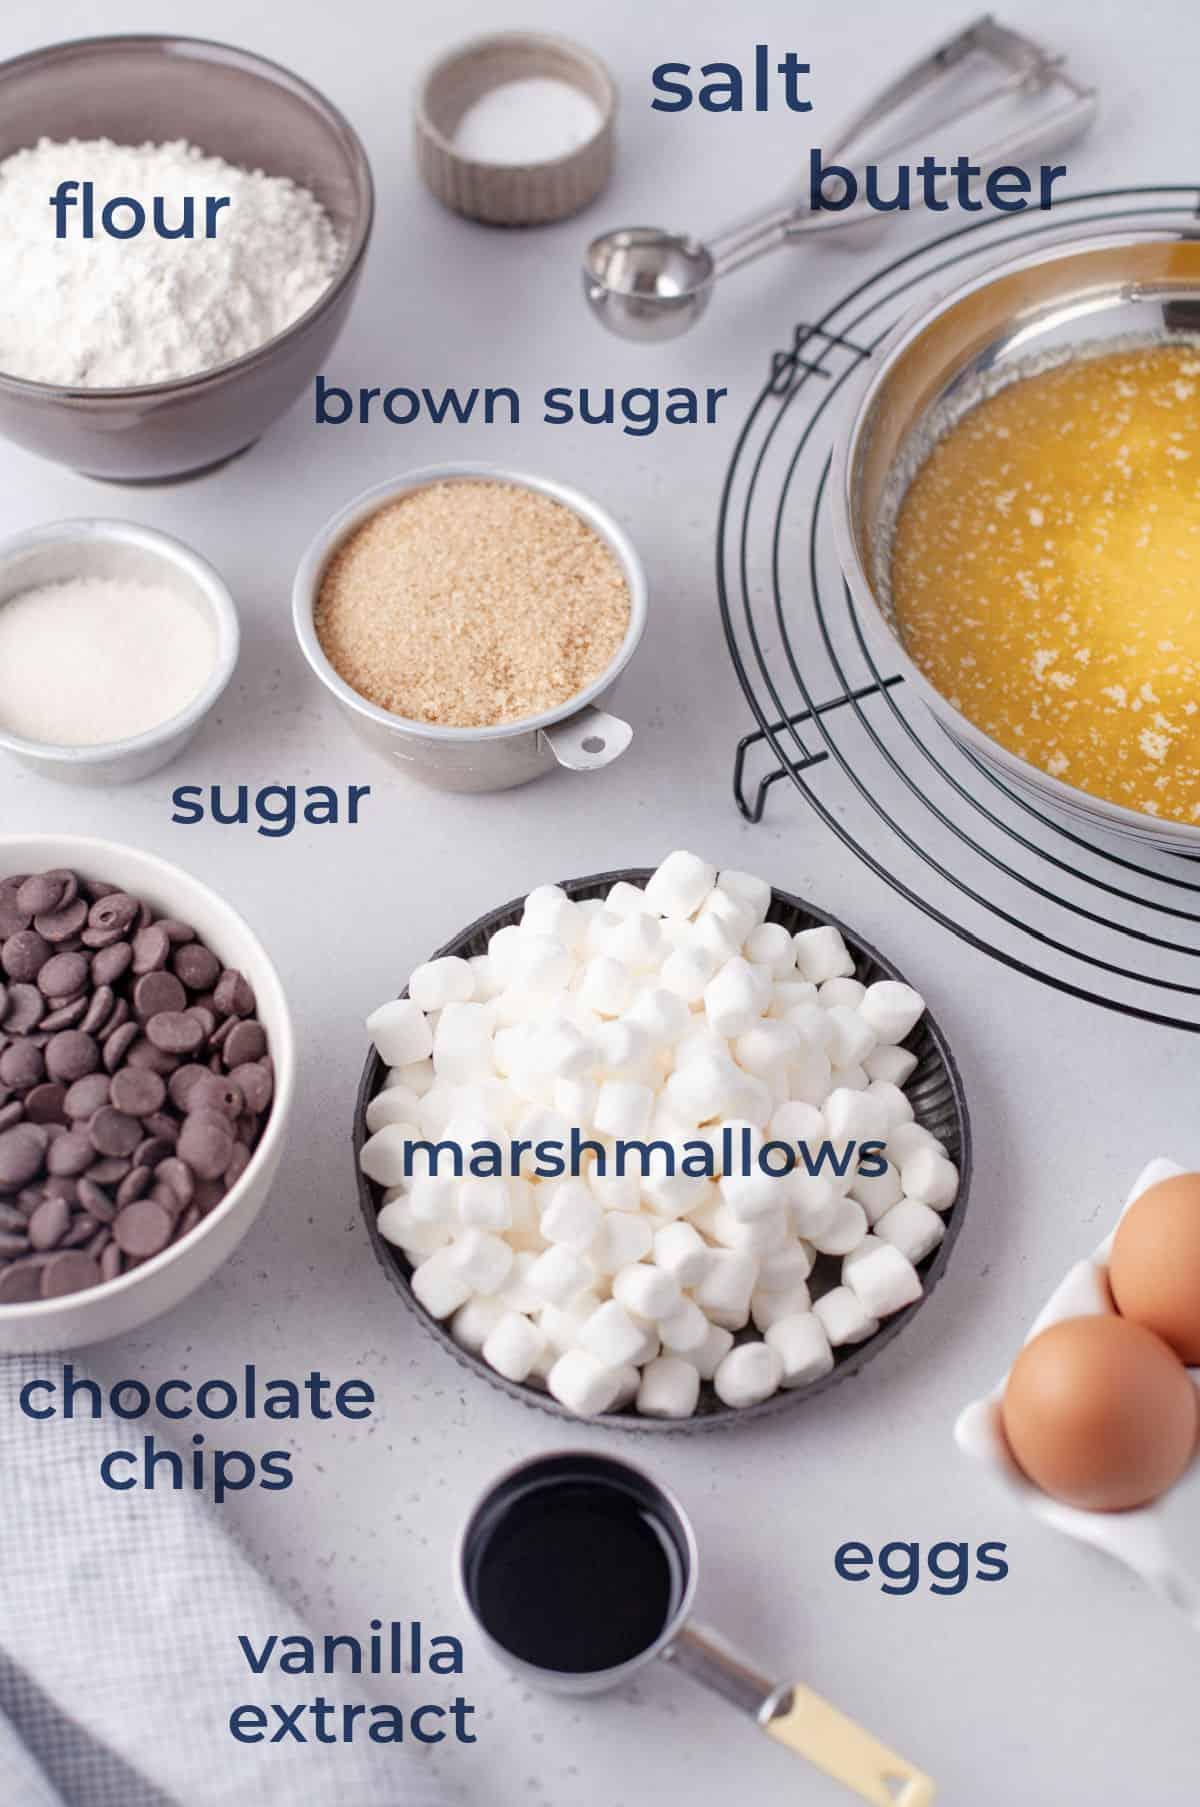 Ingredients for chocolate chip cookies - flour, eggs, chocolate chips, butter, sugar